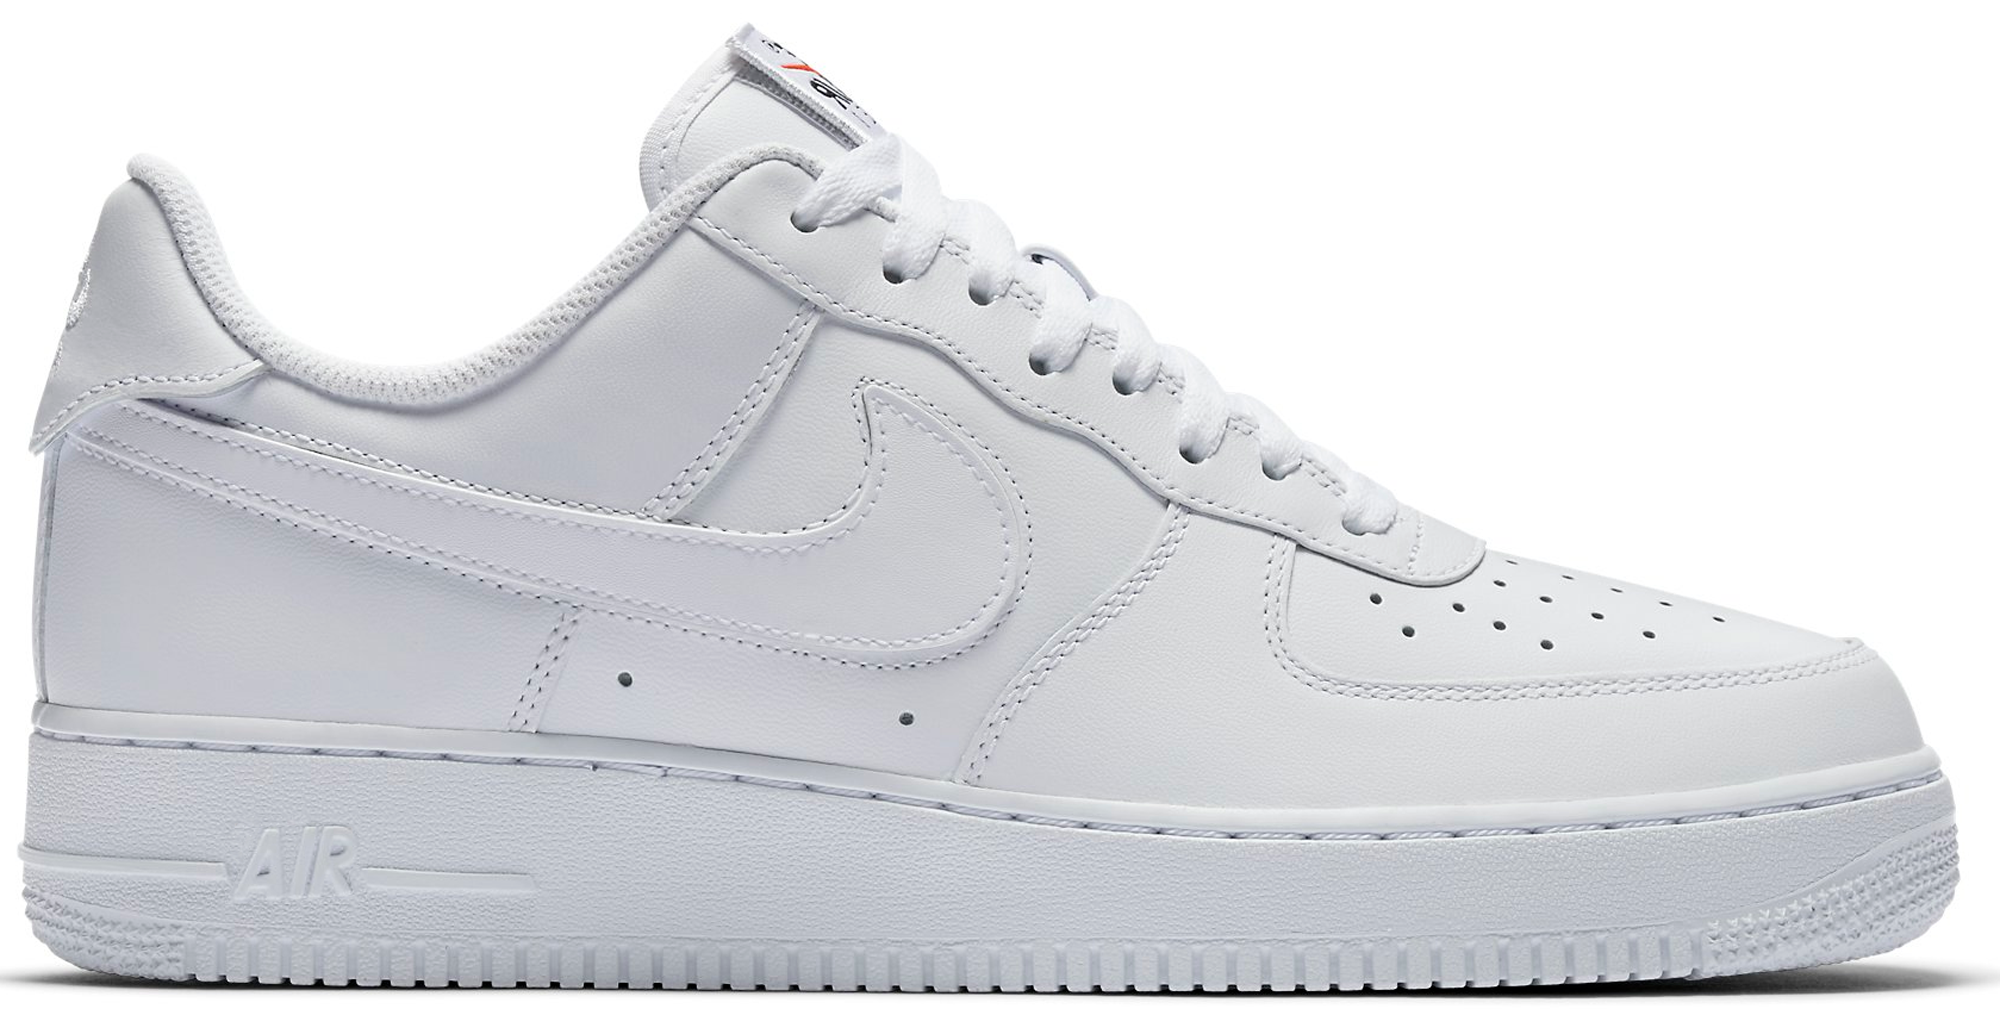 Air Force 1 Low Swoosh Pack All-Star 2018 (White)